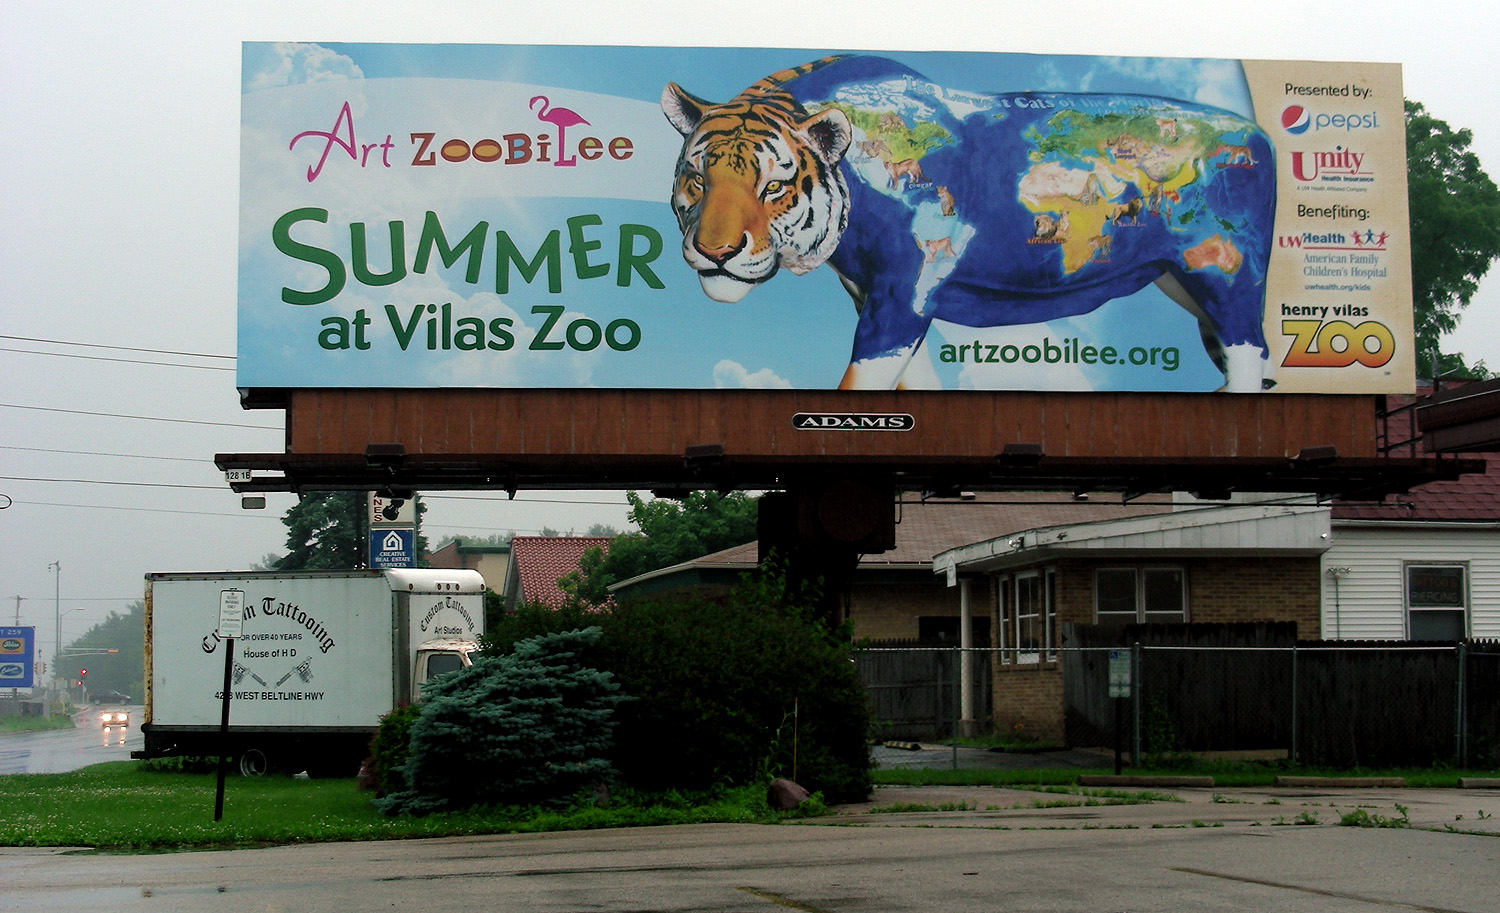 painted tiger (by S.V. Medaris) on billboard advertises the Art Zoobilee